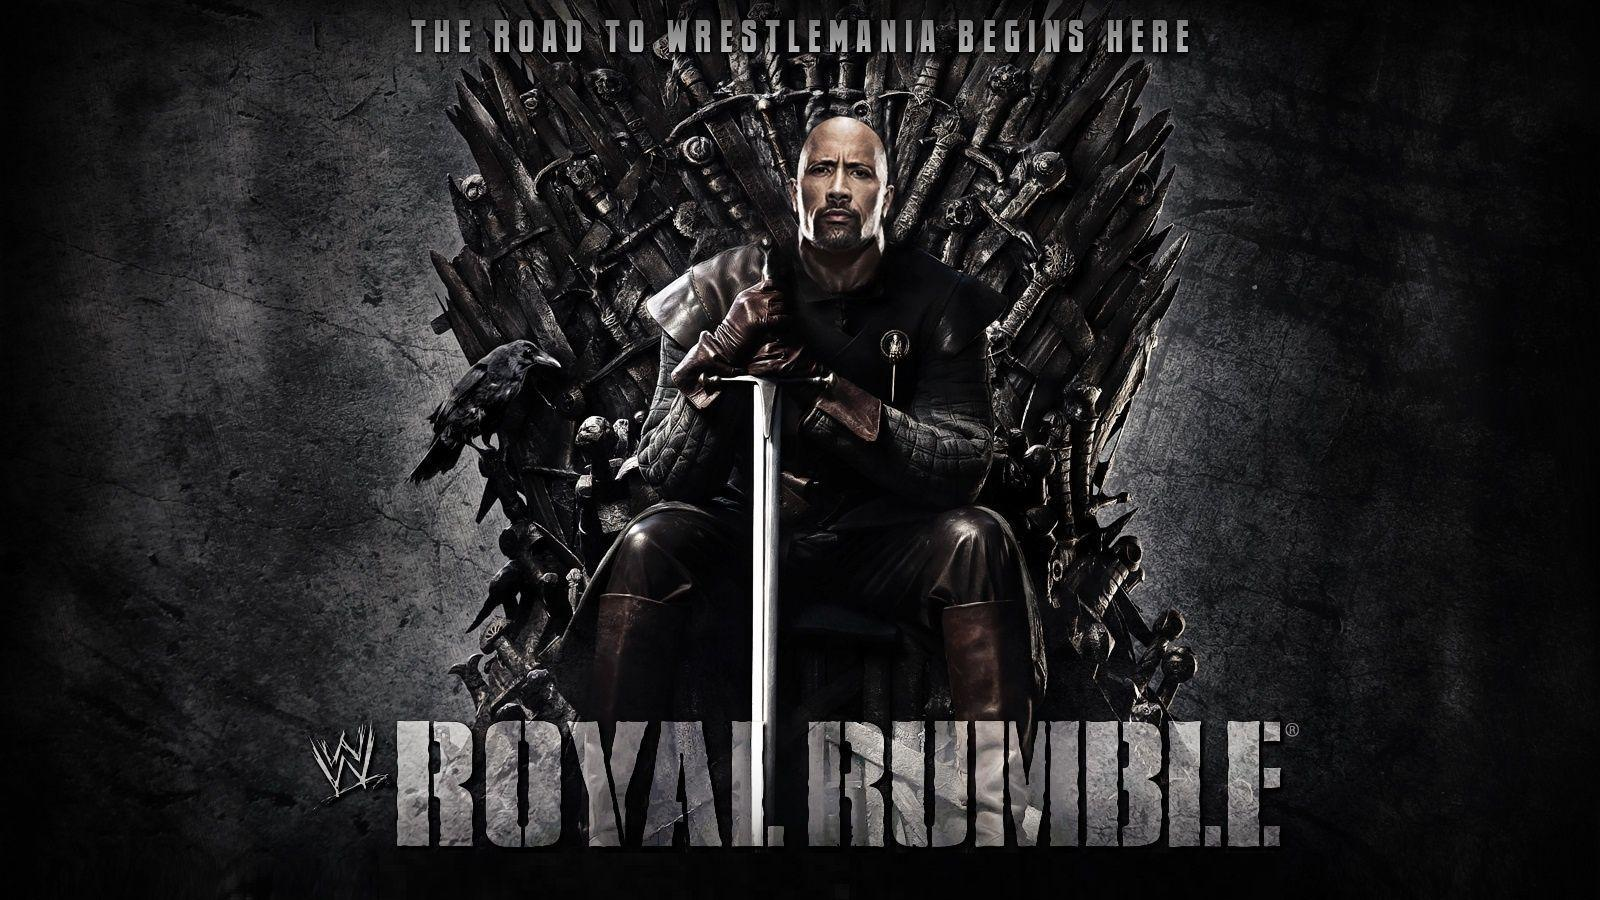 WWE Royal Rumble 2013 The Rock Wallpapers - 1600x900 - 539690